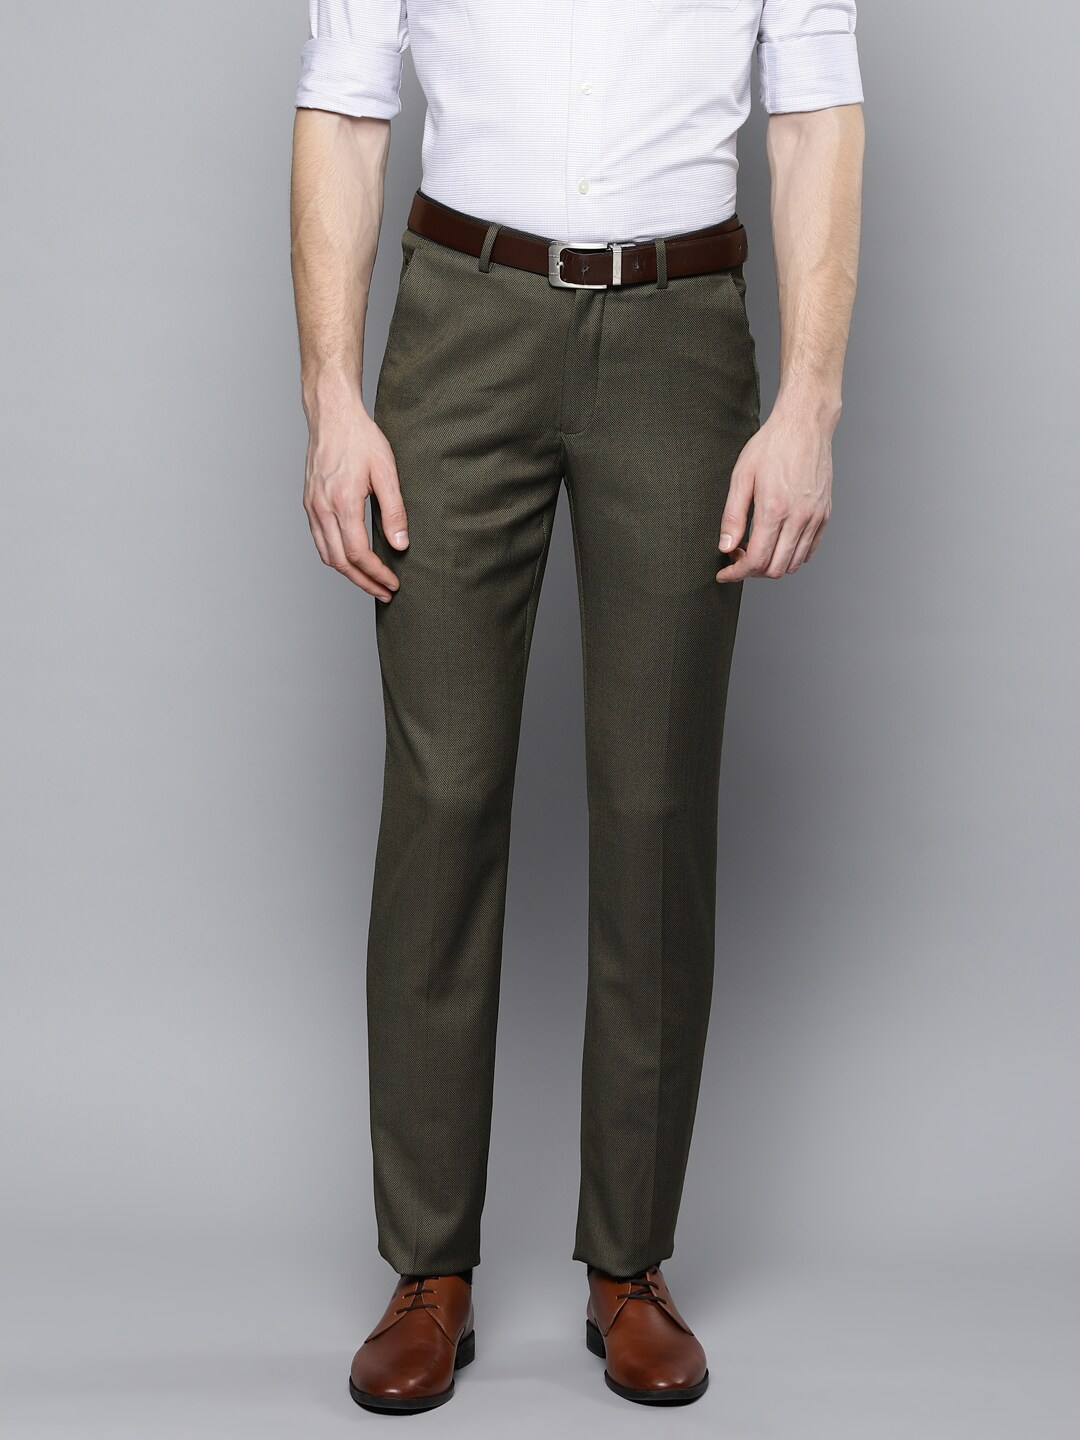 cb66bd4b335 Louis Philippe Trousers - Buy Louis Philippe Trousers online in India